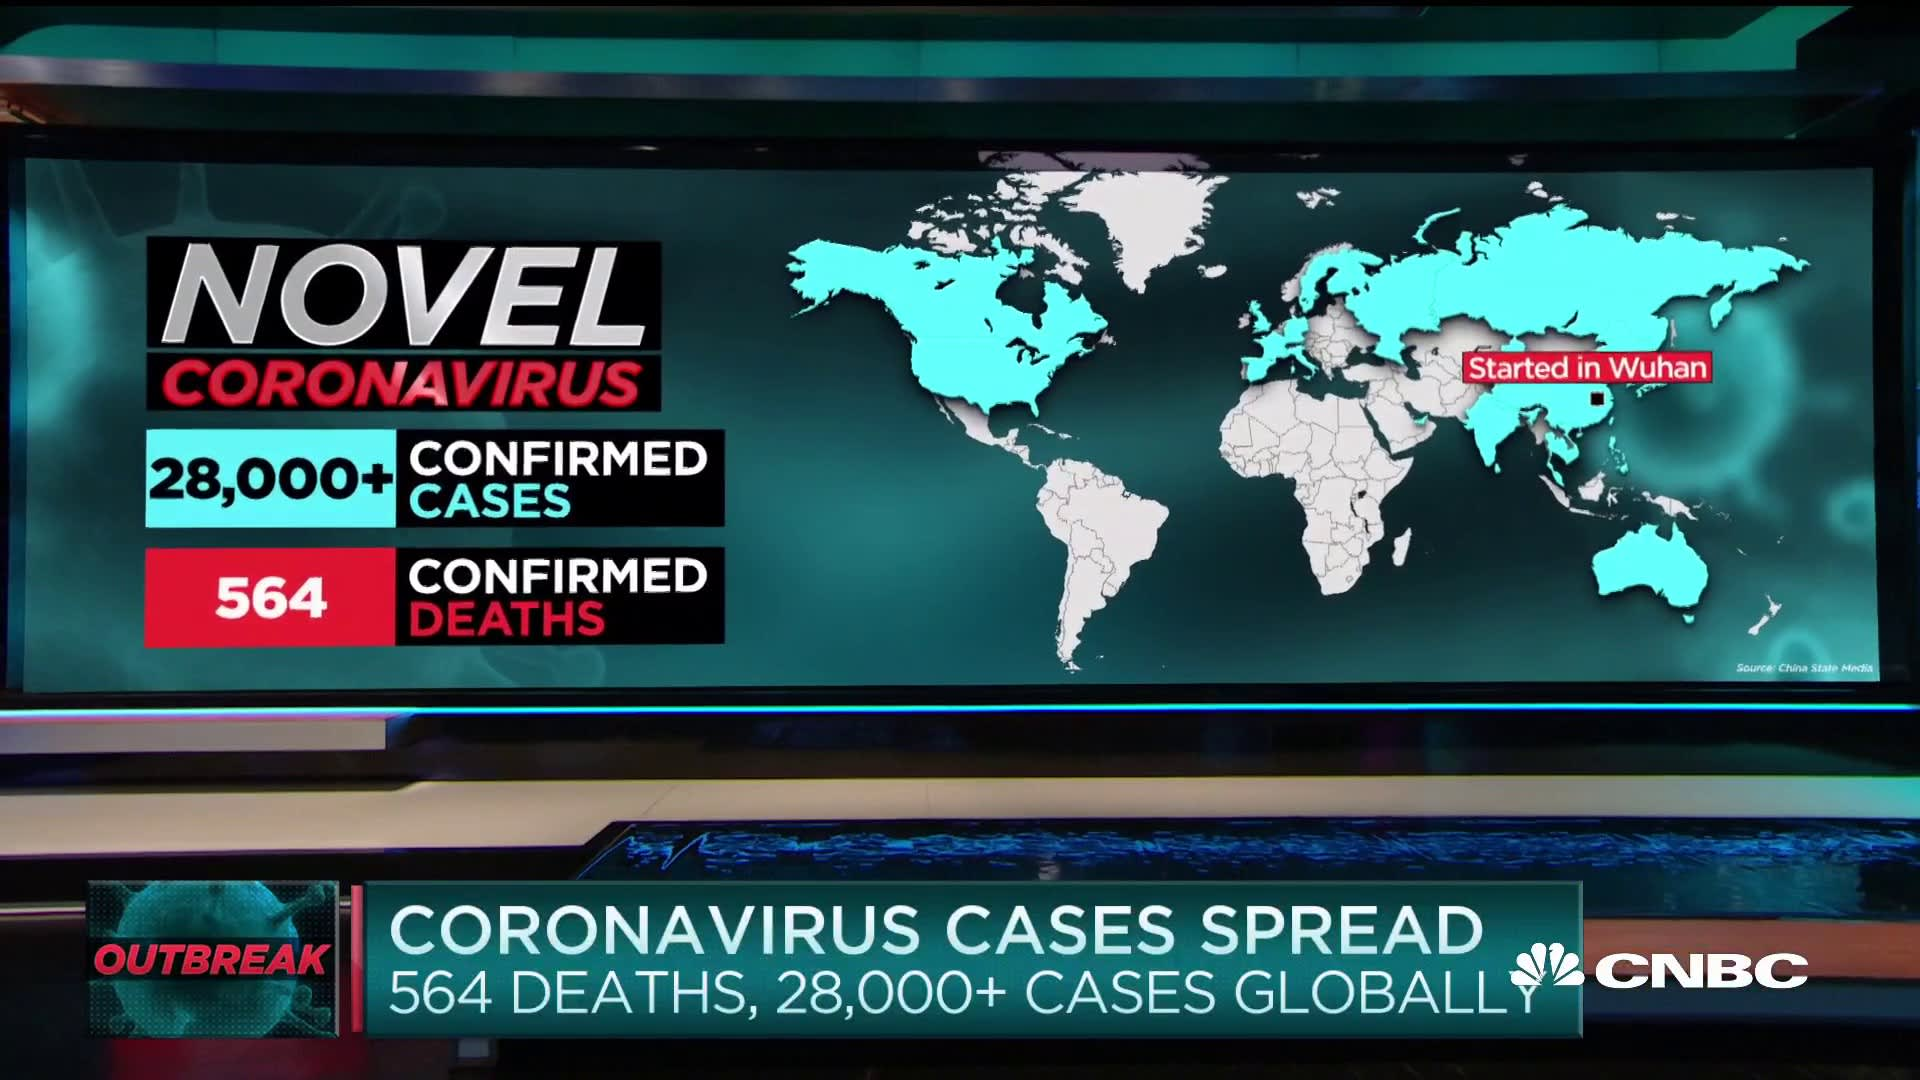 Britain and Vietnam confirm new coronavirus cases, death toll tops 500